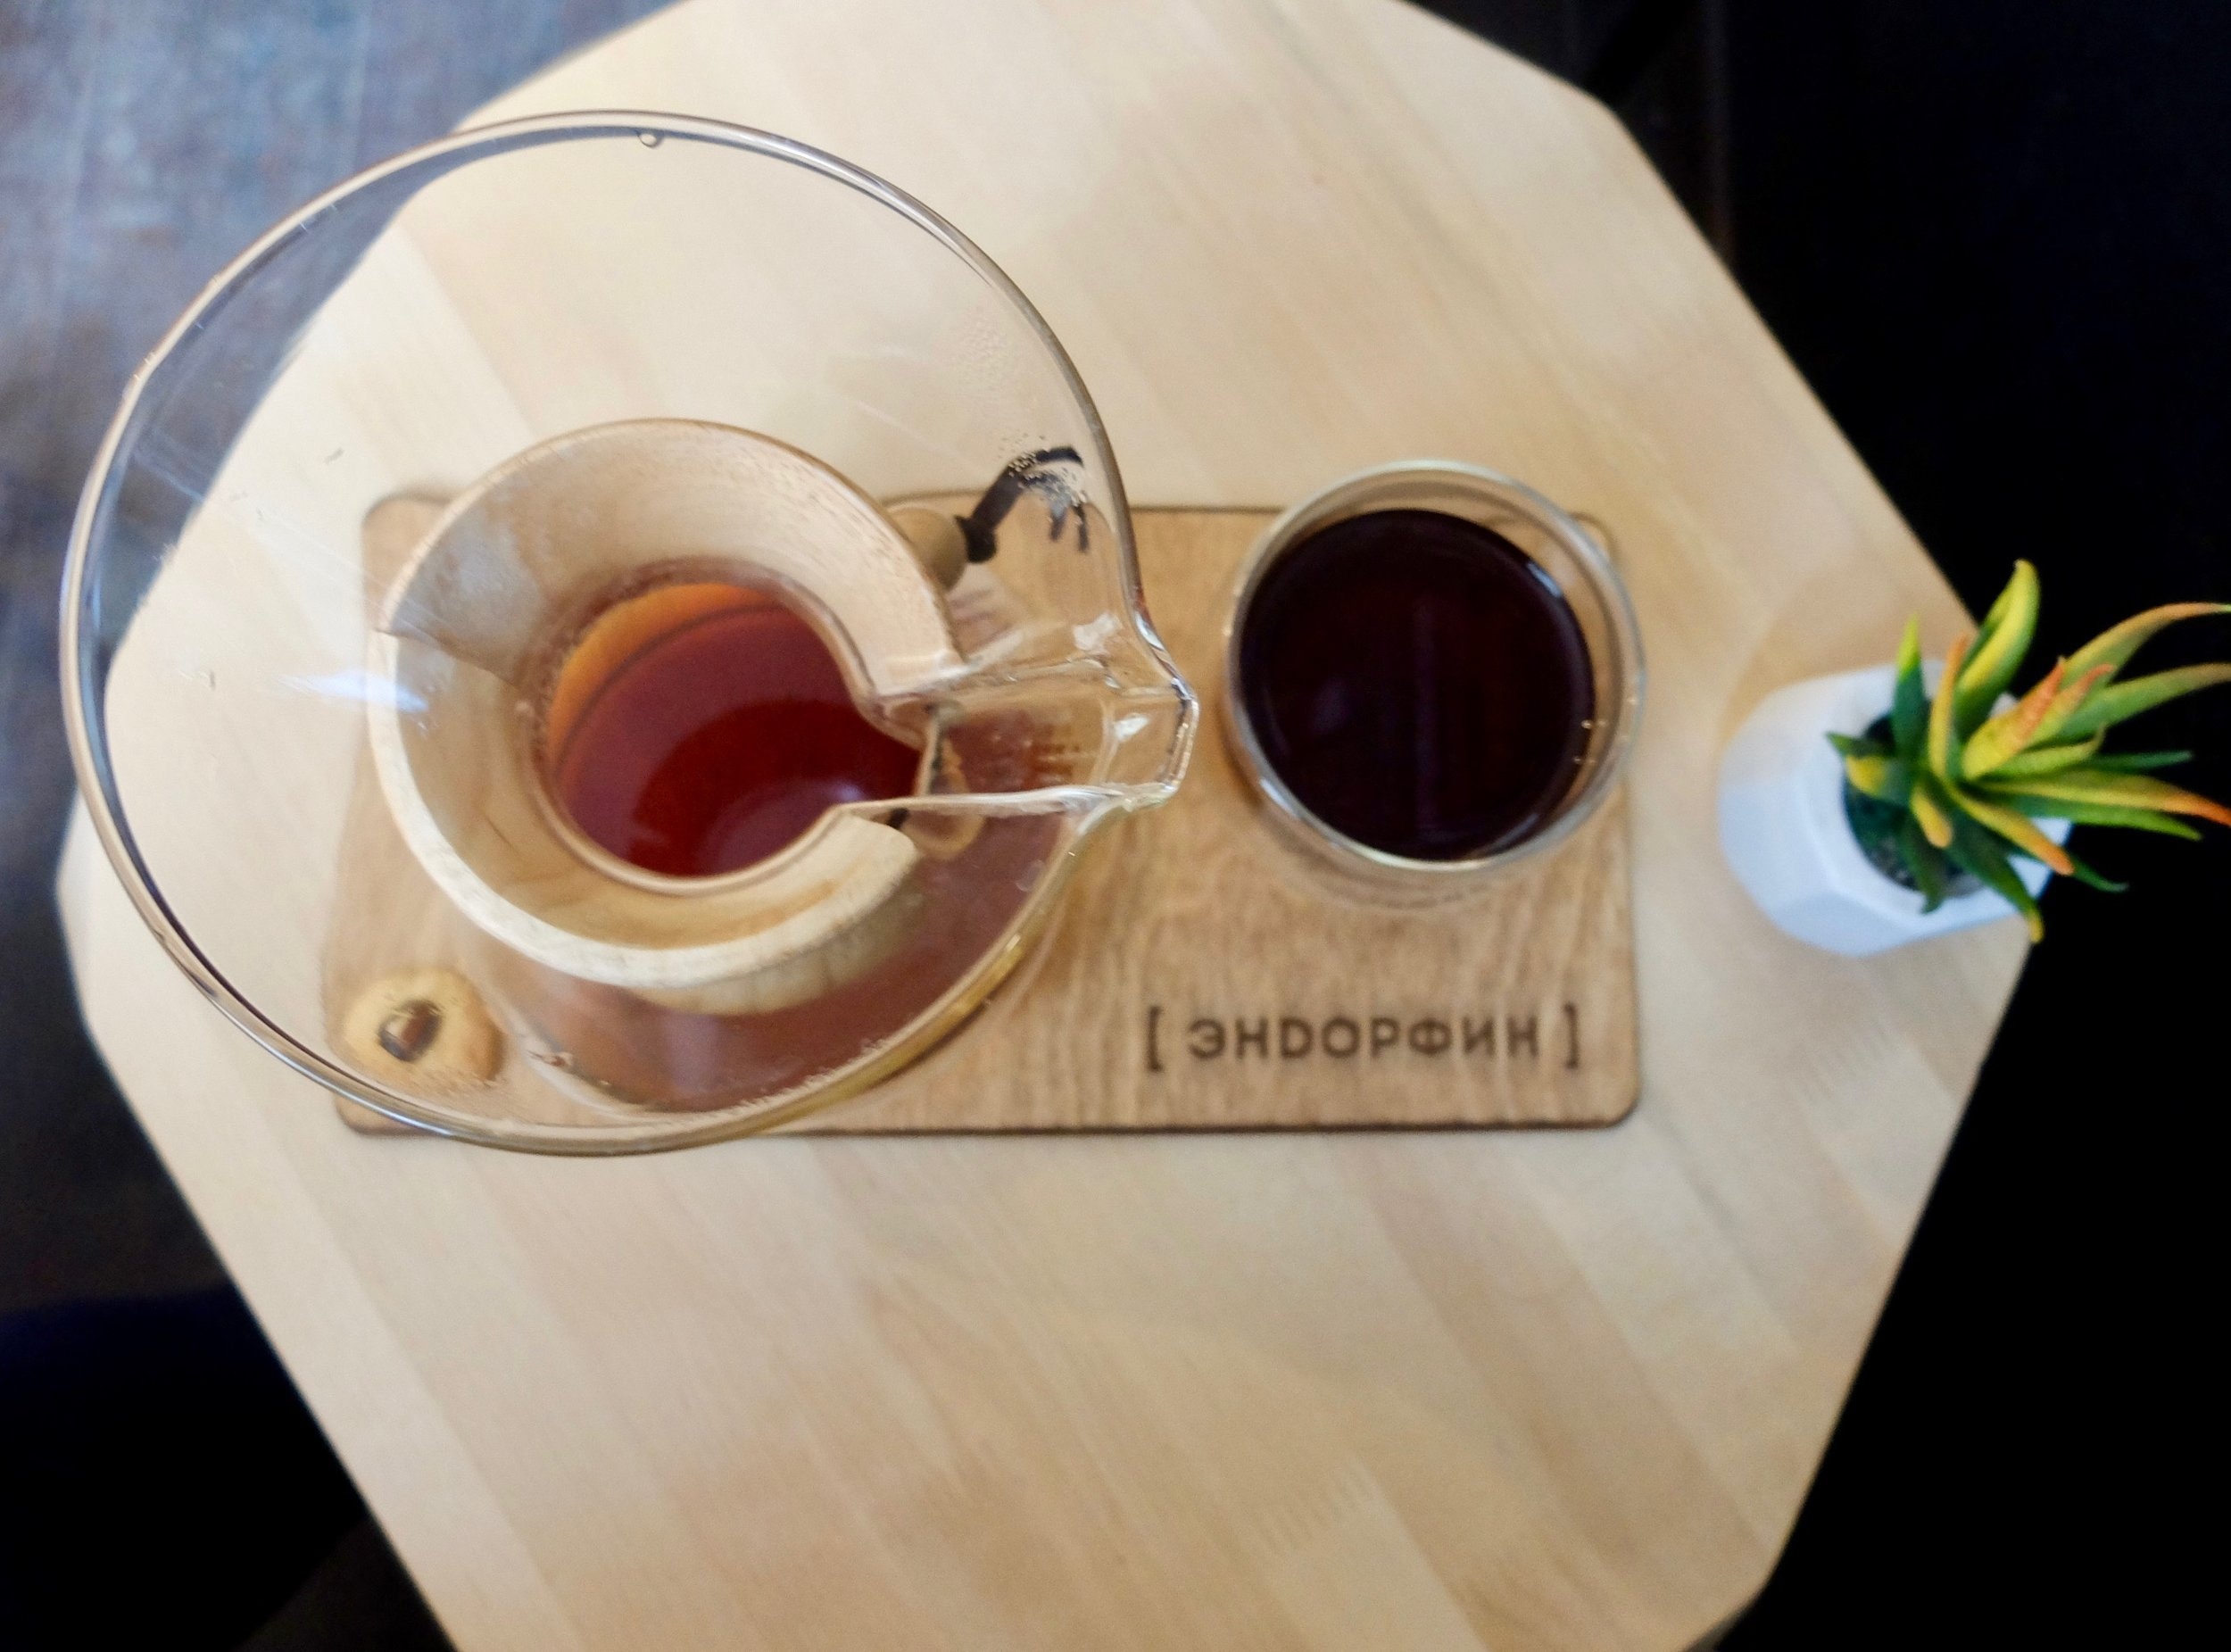 Russian food and beverage: as aesthetically pleasing as it is delicious, as proven by Endorfin Coffee in Tomsk.